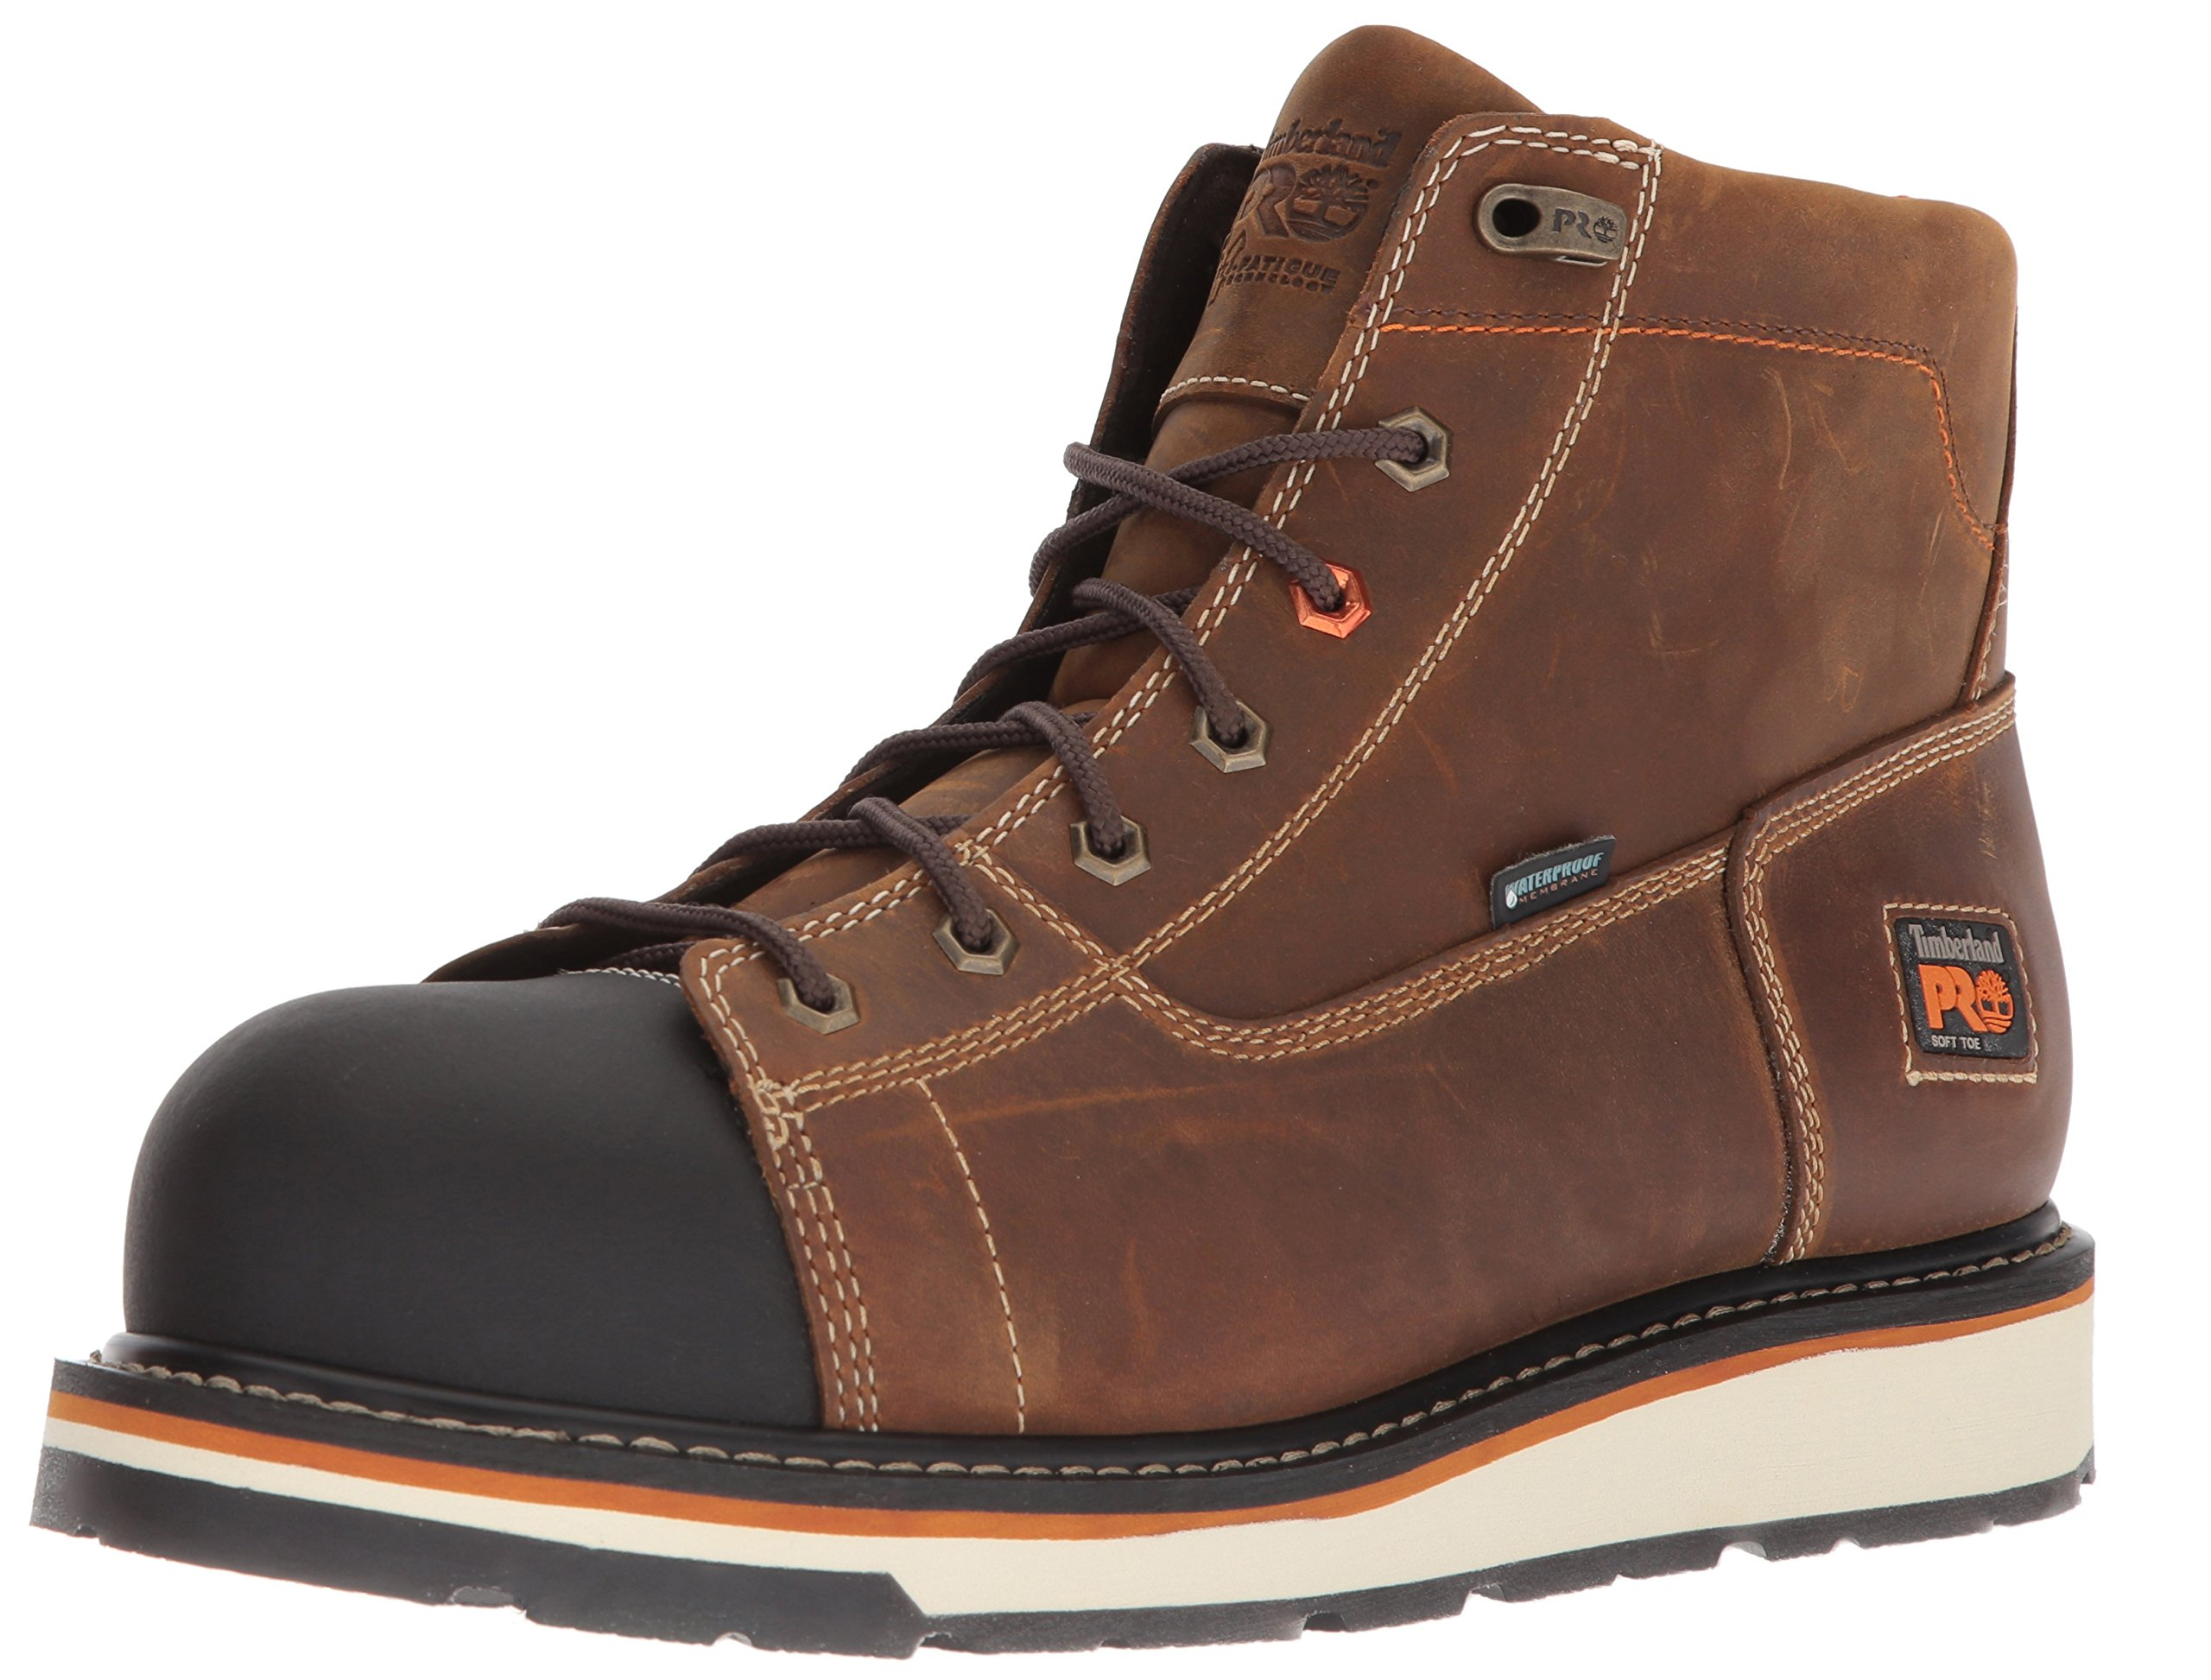 Timberland PRO Men's Gridworks Soft Toe Waterproof Industrial Boot, Brown, 10 W US